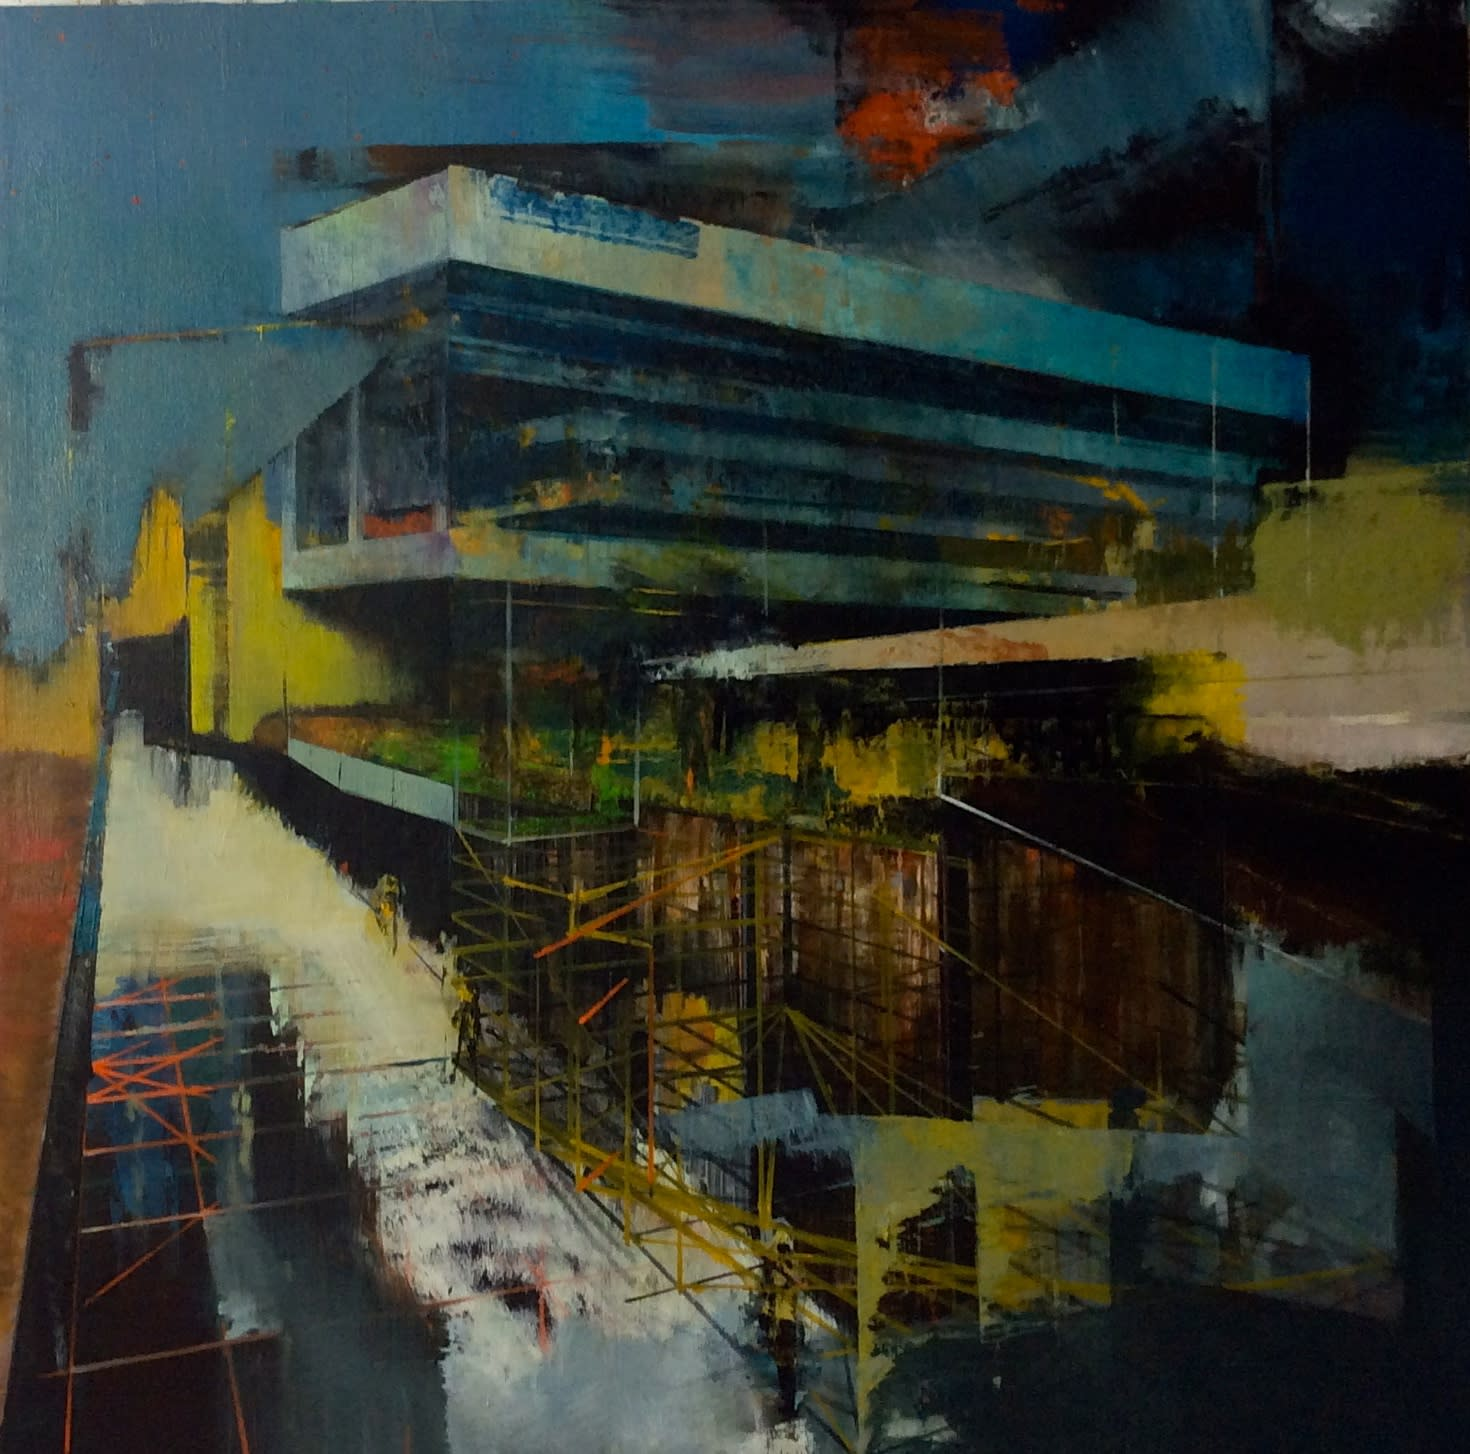 TIM KENT - INTERFERENCE ZONE - 2016 - OIL ON LINEN - 76 X 76 CM